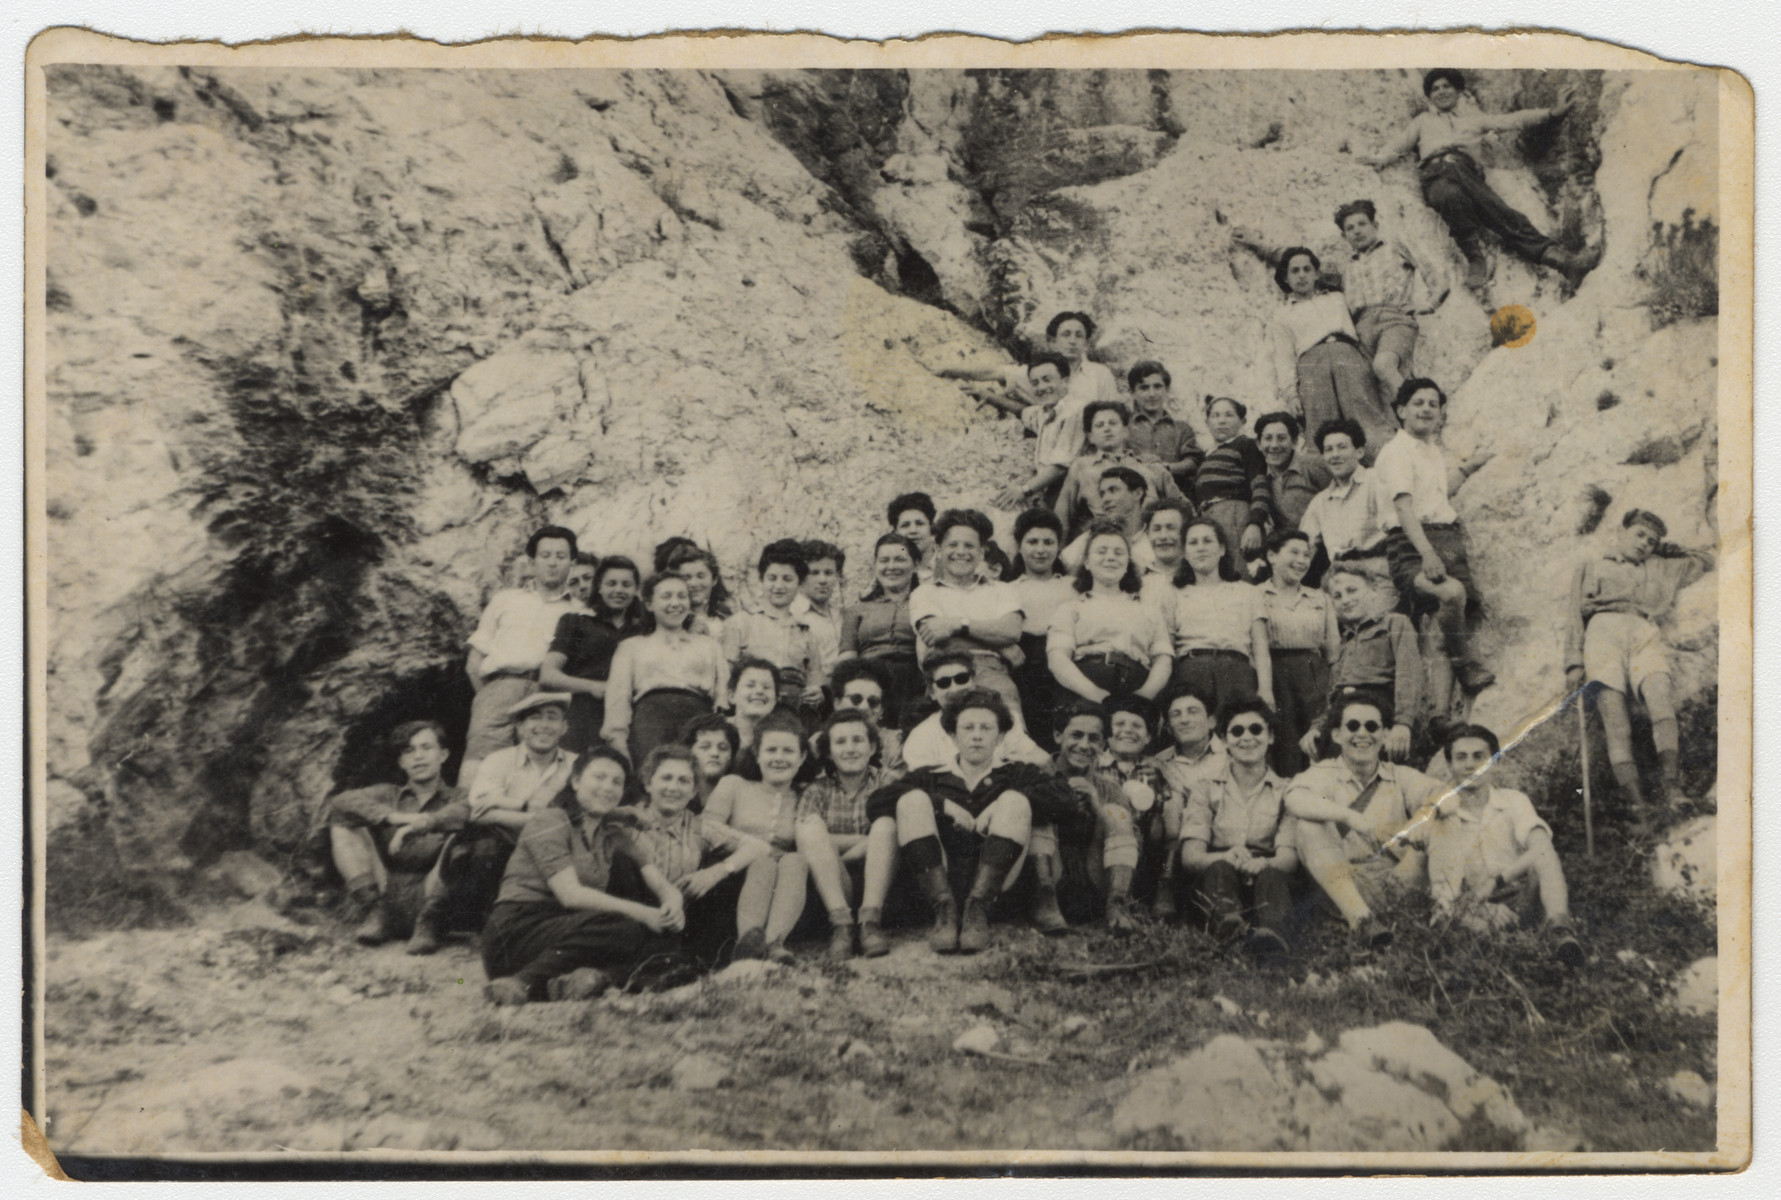 Jewish youth who had been passengers on the Exodus and reinterned in Germany go for an excursion in the hills outside Marseilles prior to their legal departure for Palestine.